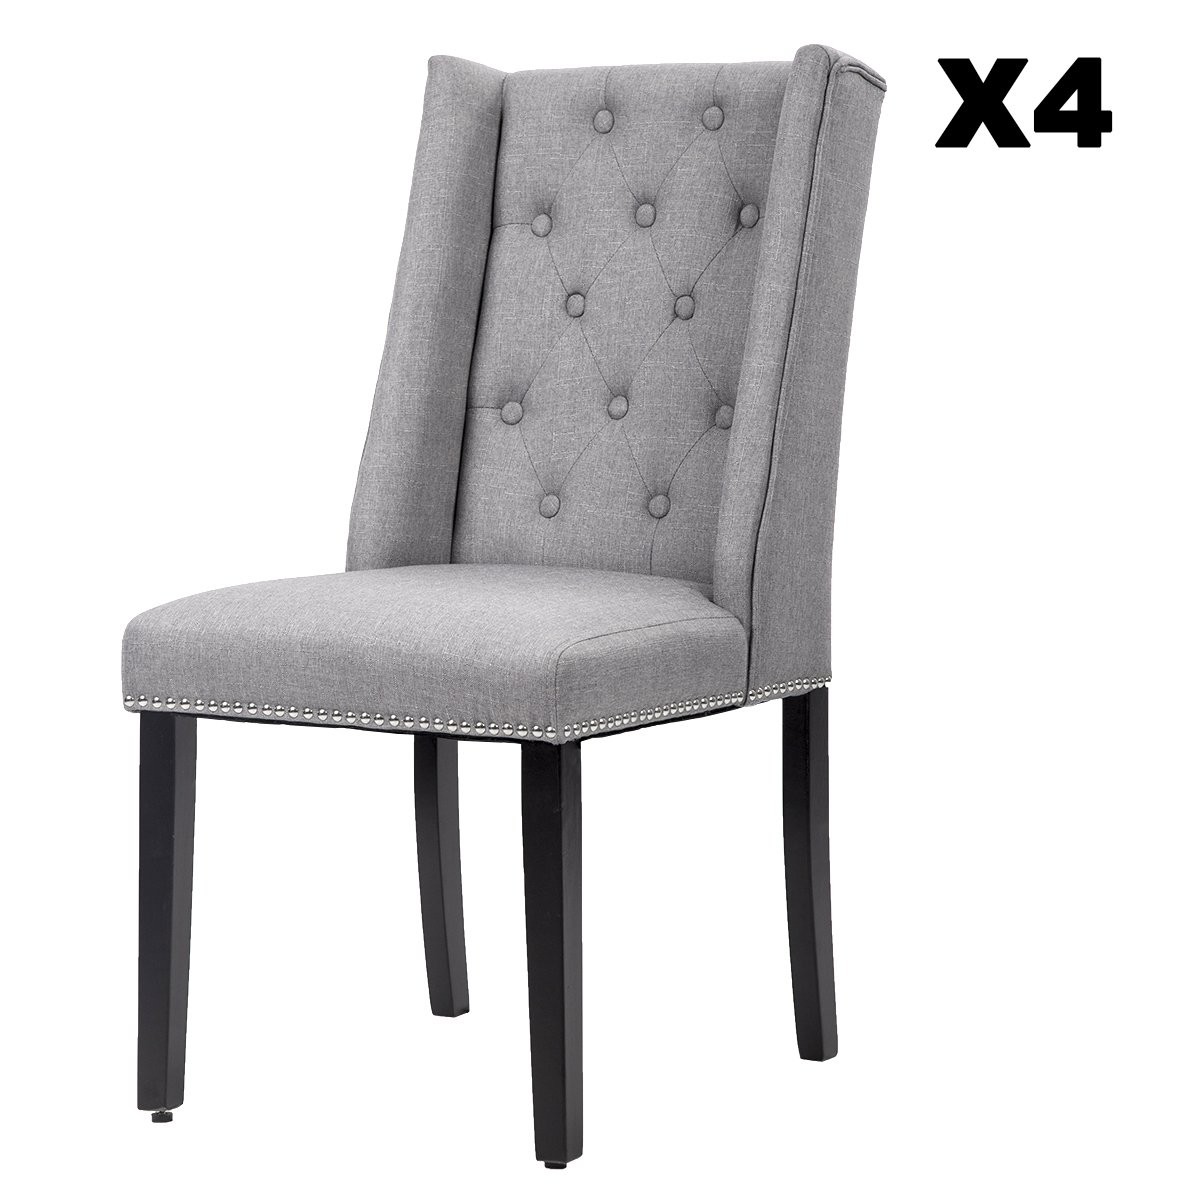 Elegant Dining Side Chairs Button Tufted Fabric w Nailhead Set of 4